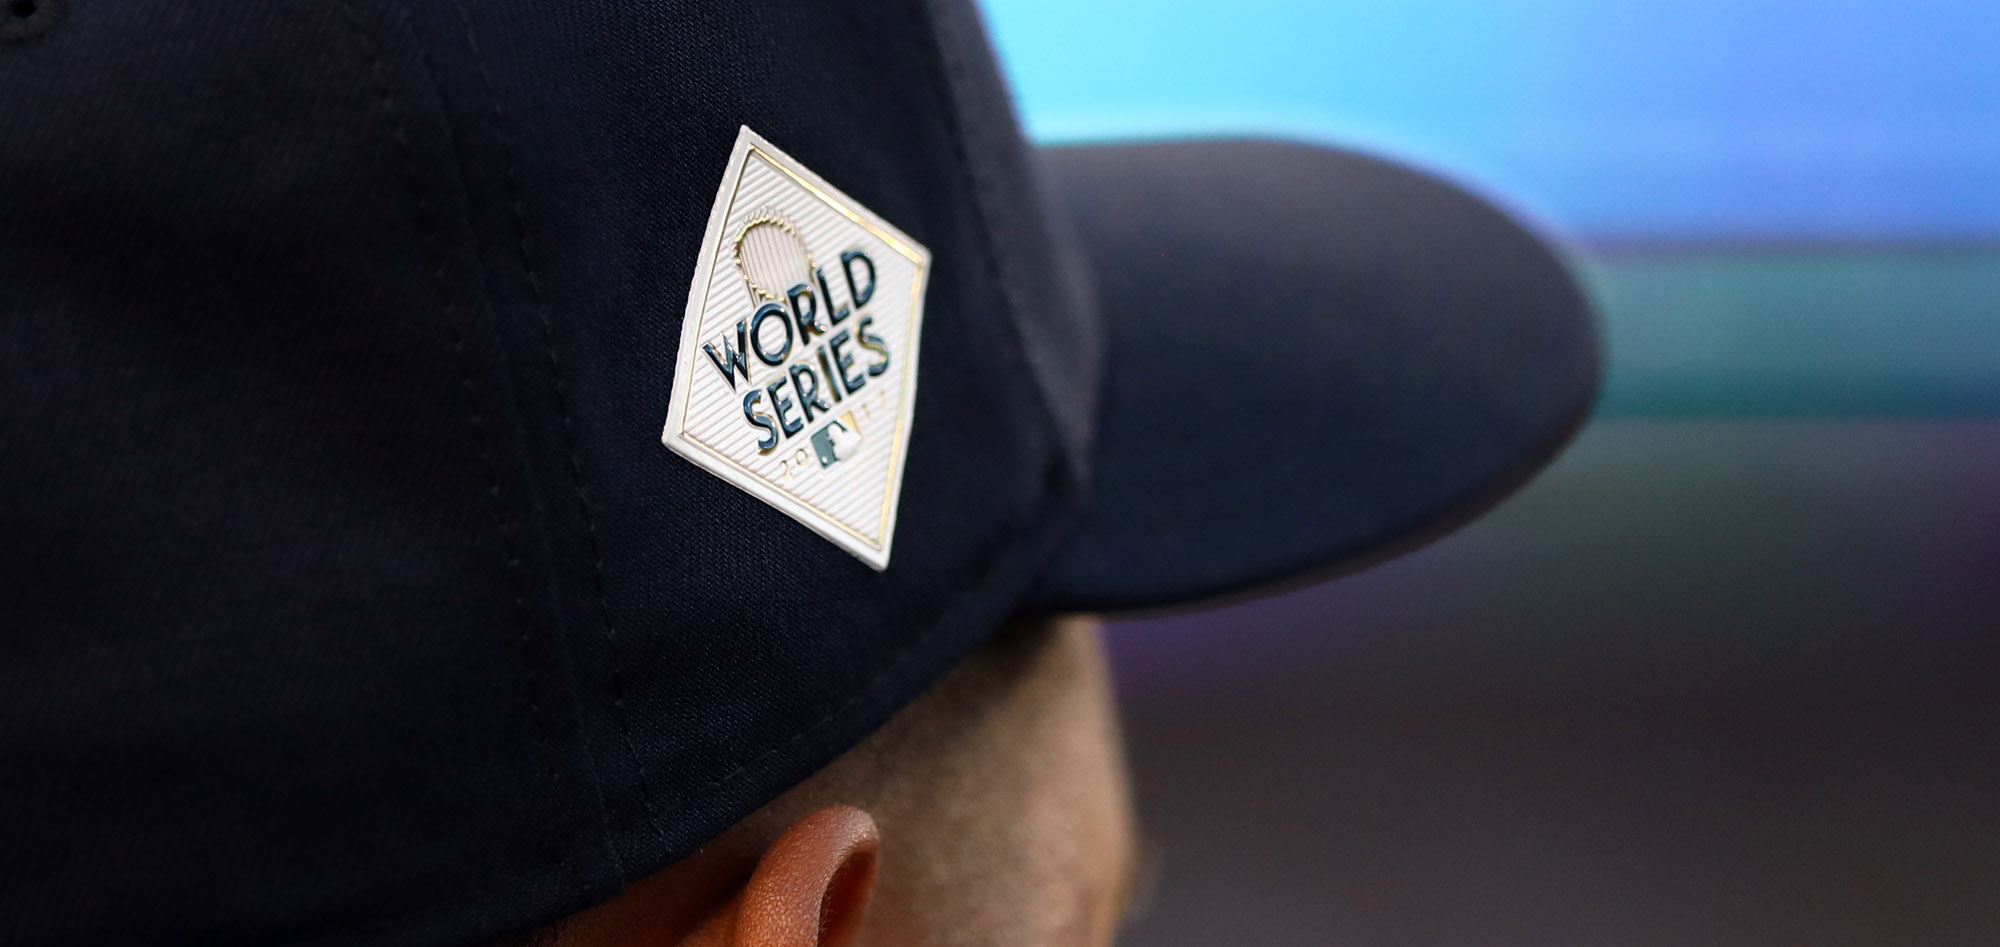 World_Series_Cap_Logo.jpg